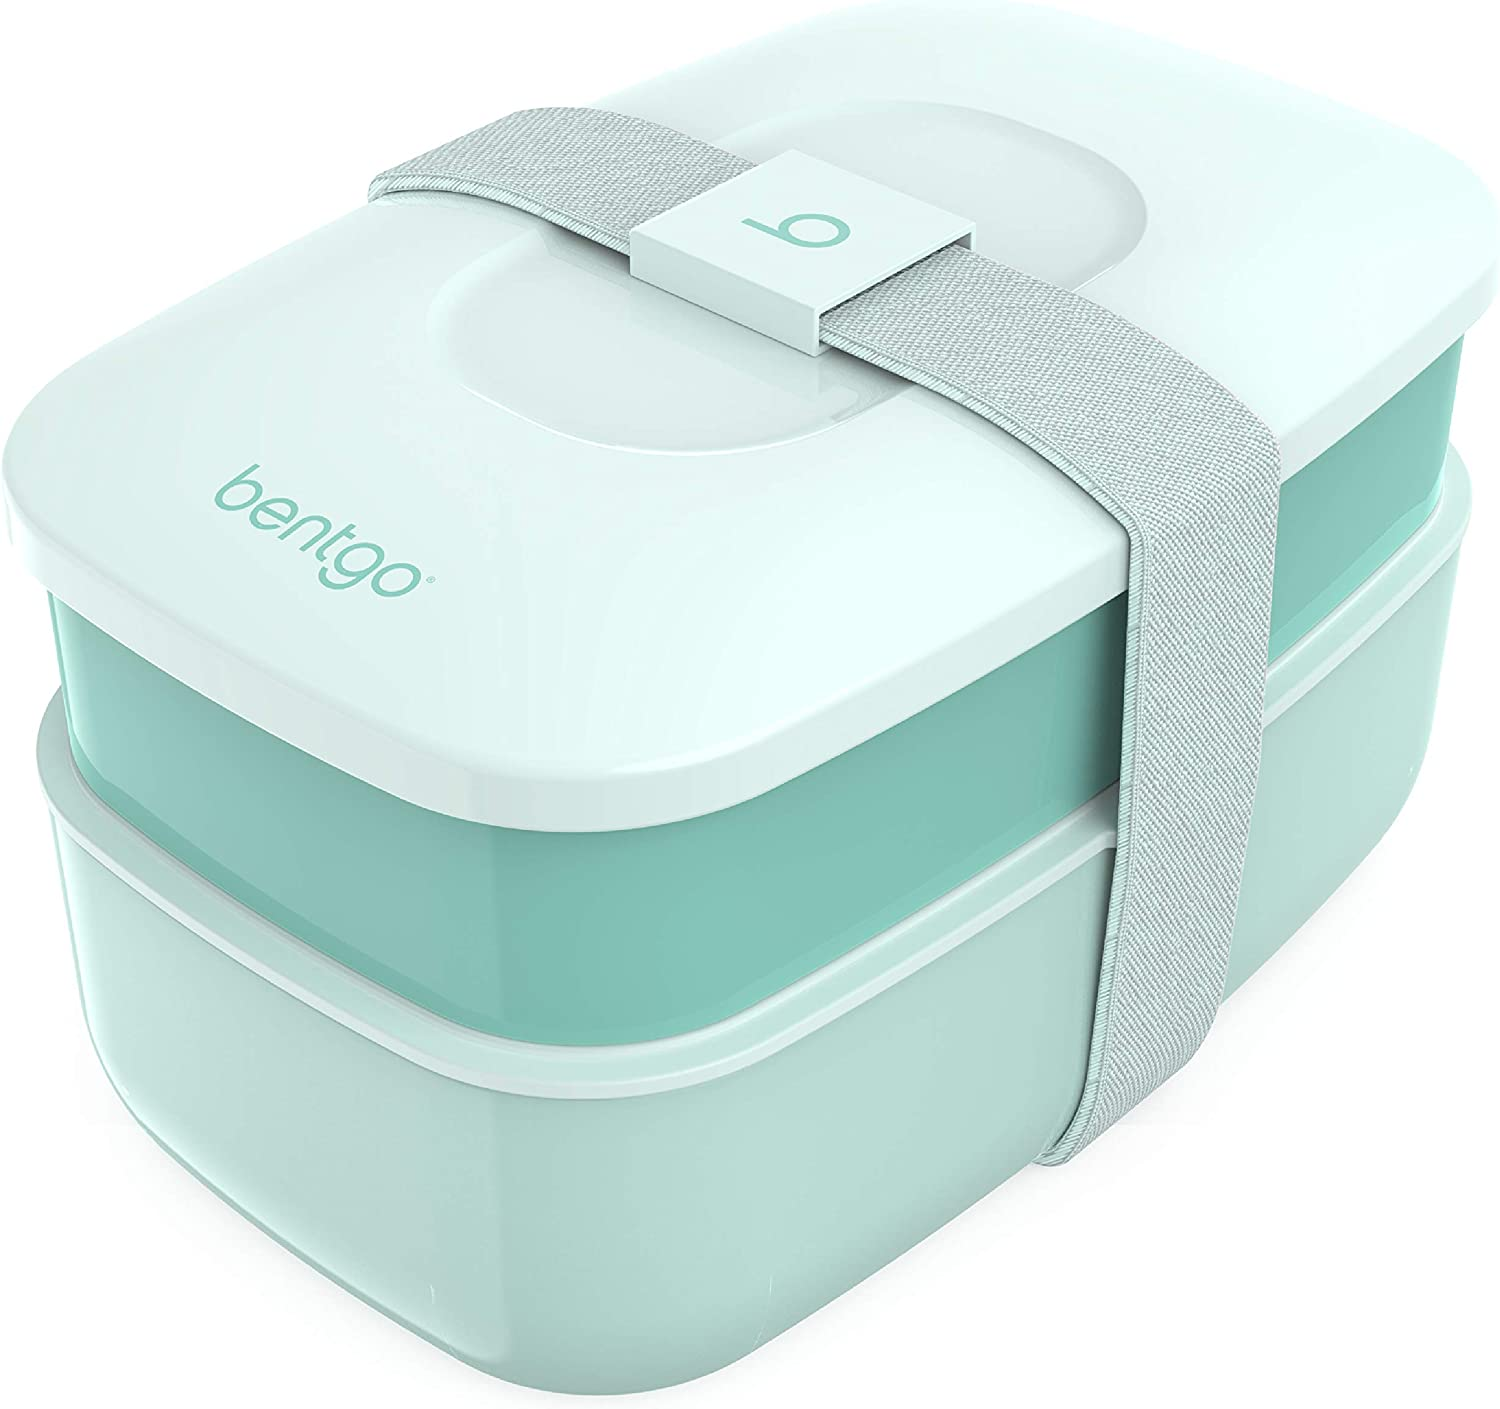 Bentgo Classic: All-in-One Stackable Lunch Box! .99 at Amazon!